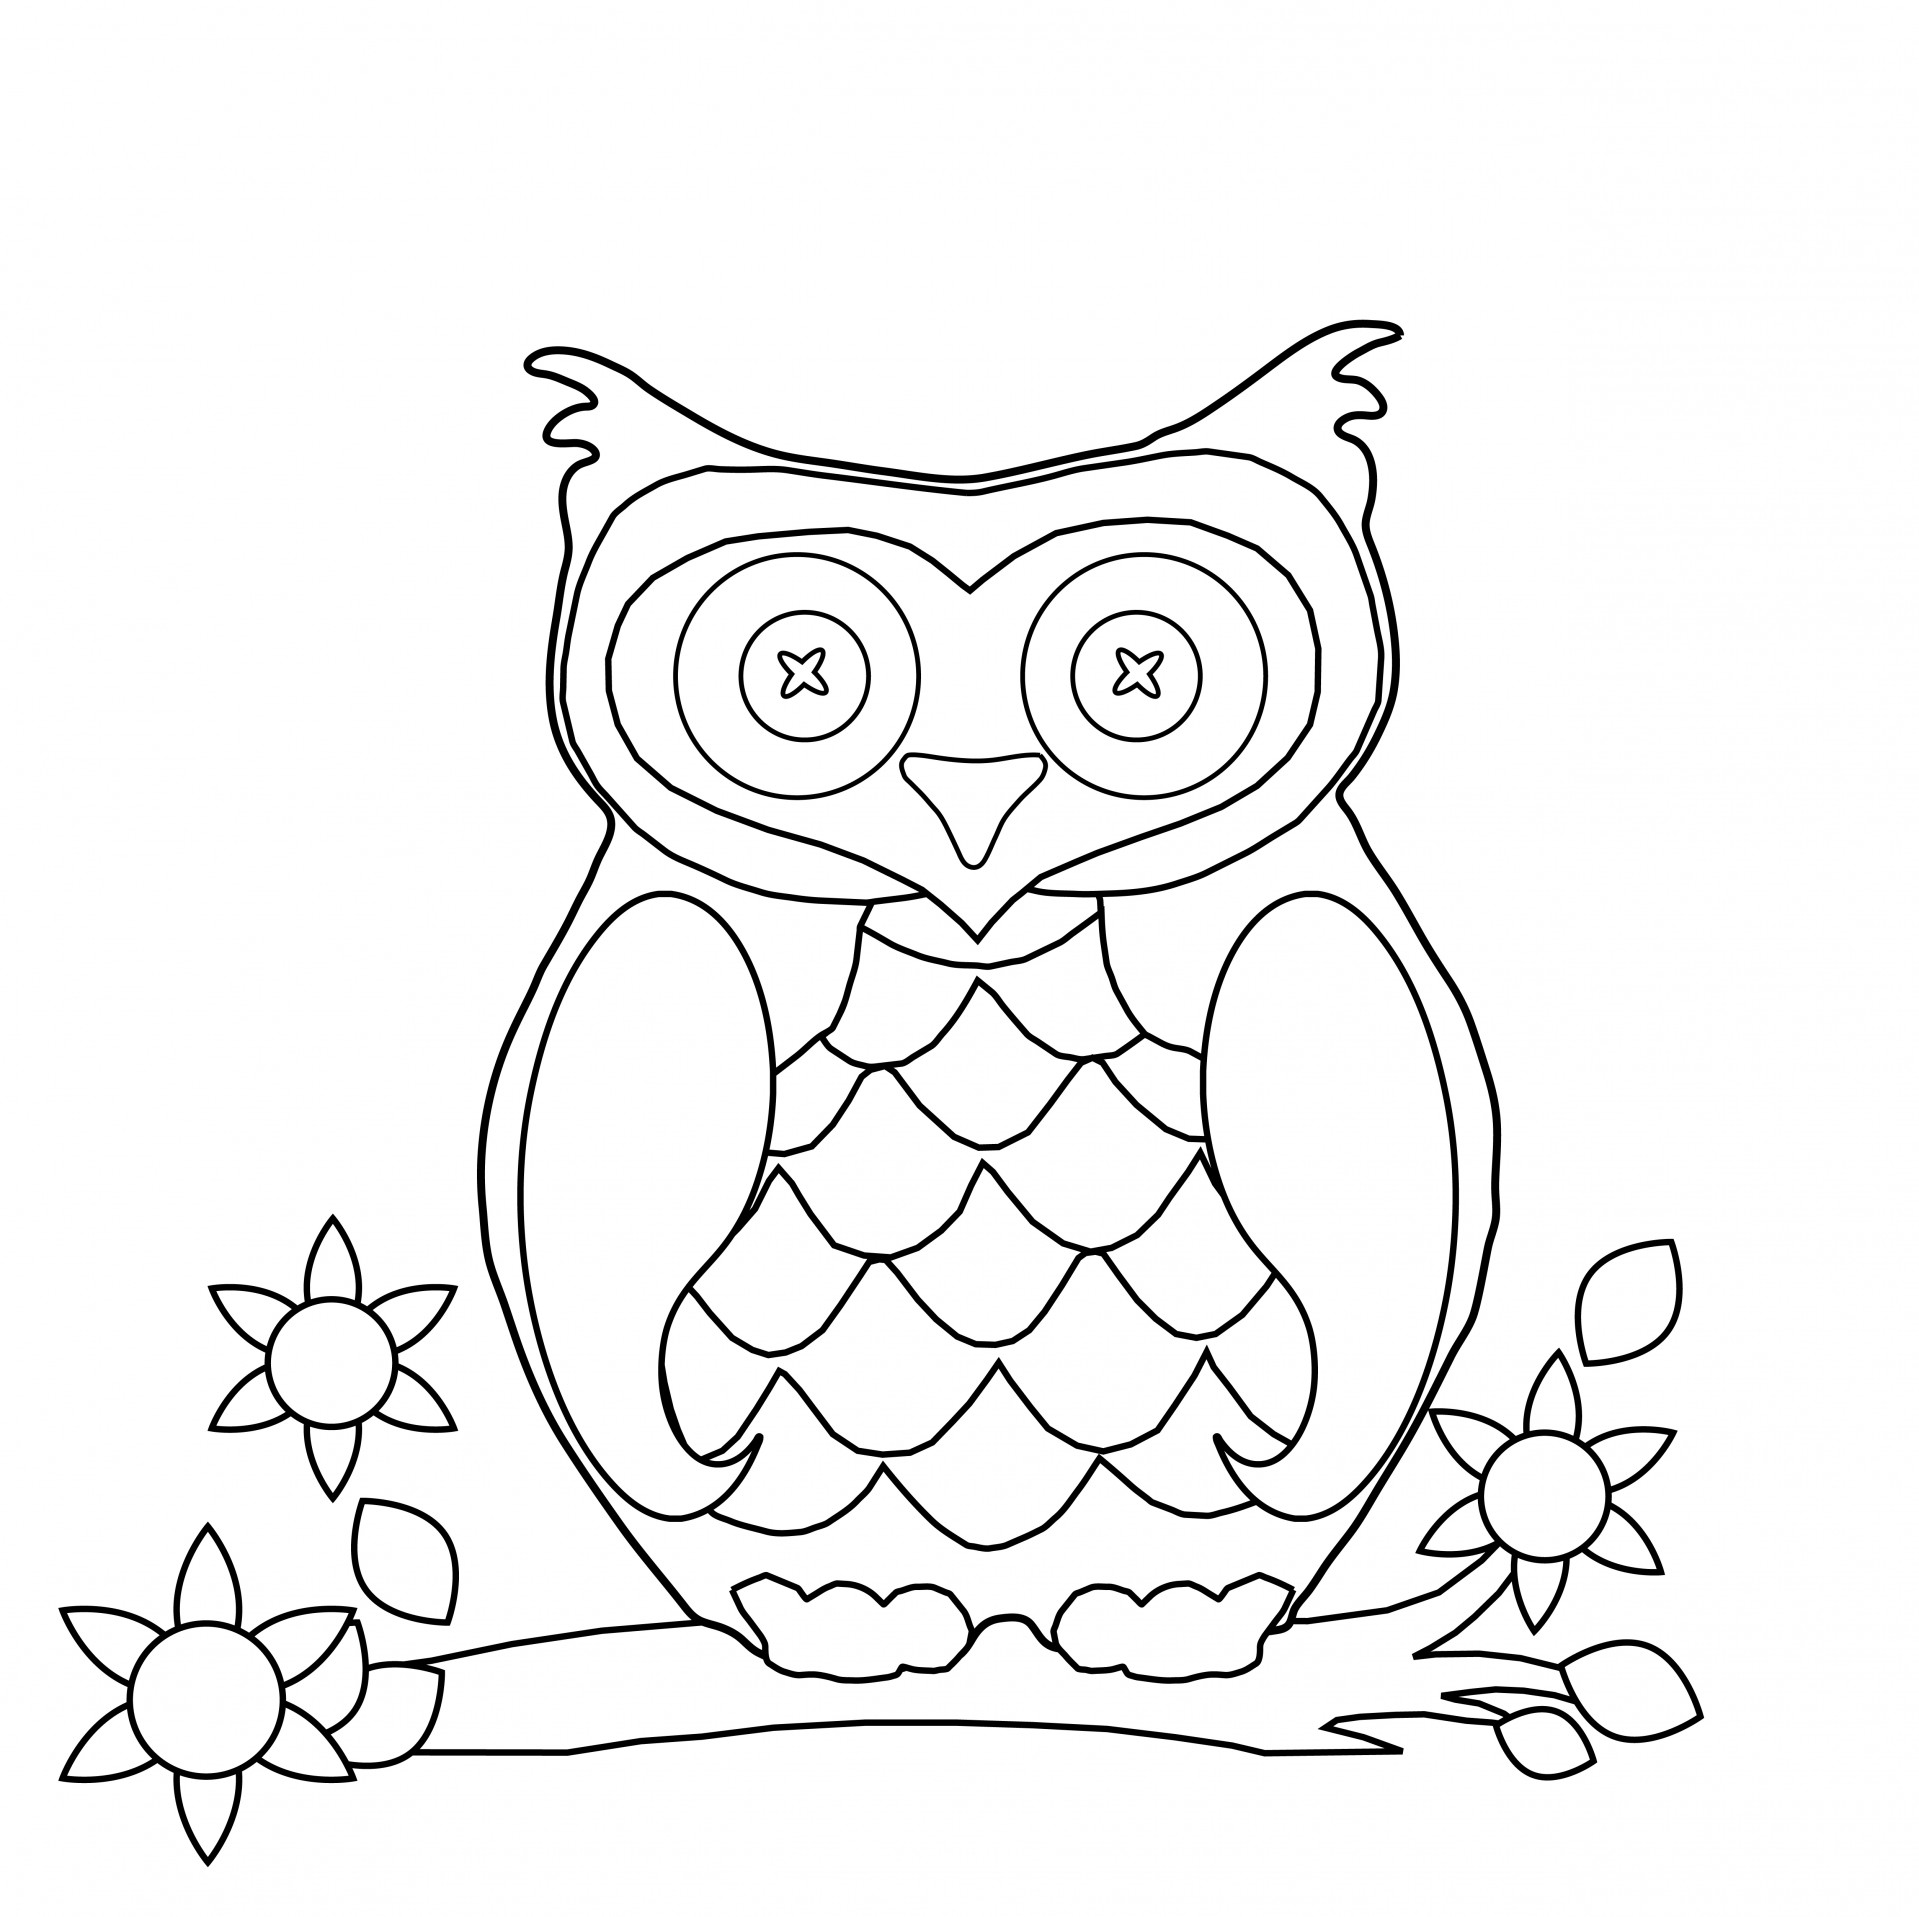 coloring printouts owl coloring pages for adults free detailed owl coloring printouts coloring